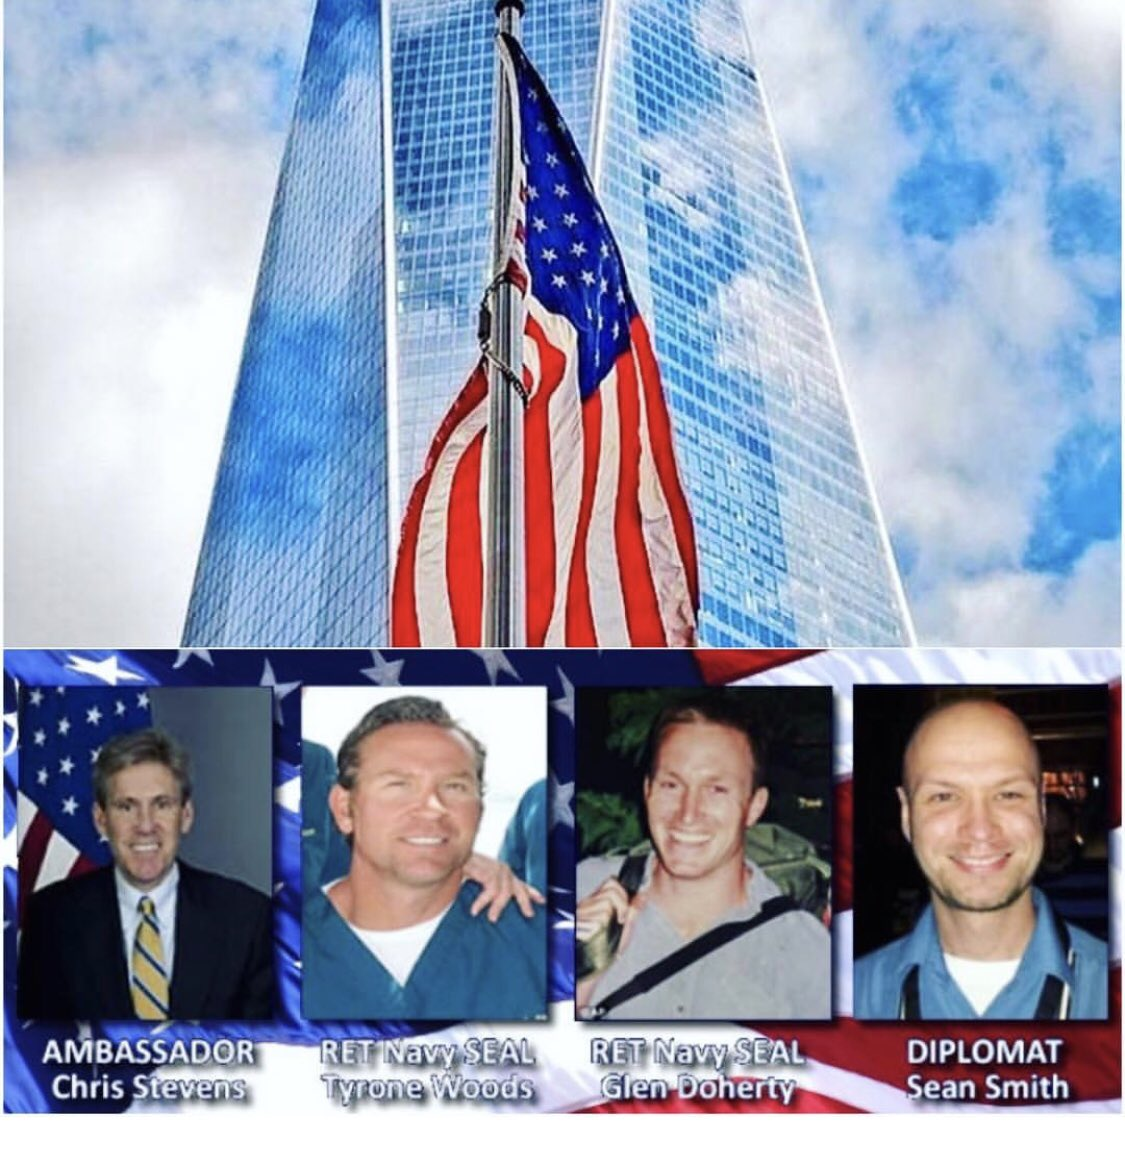 Take a moment to remember those we lost on 9/11/01 and 9/11/12